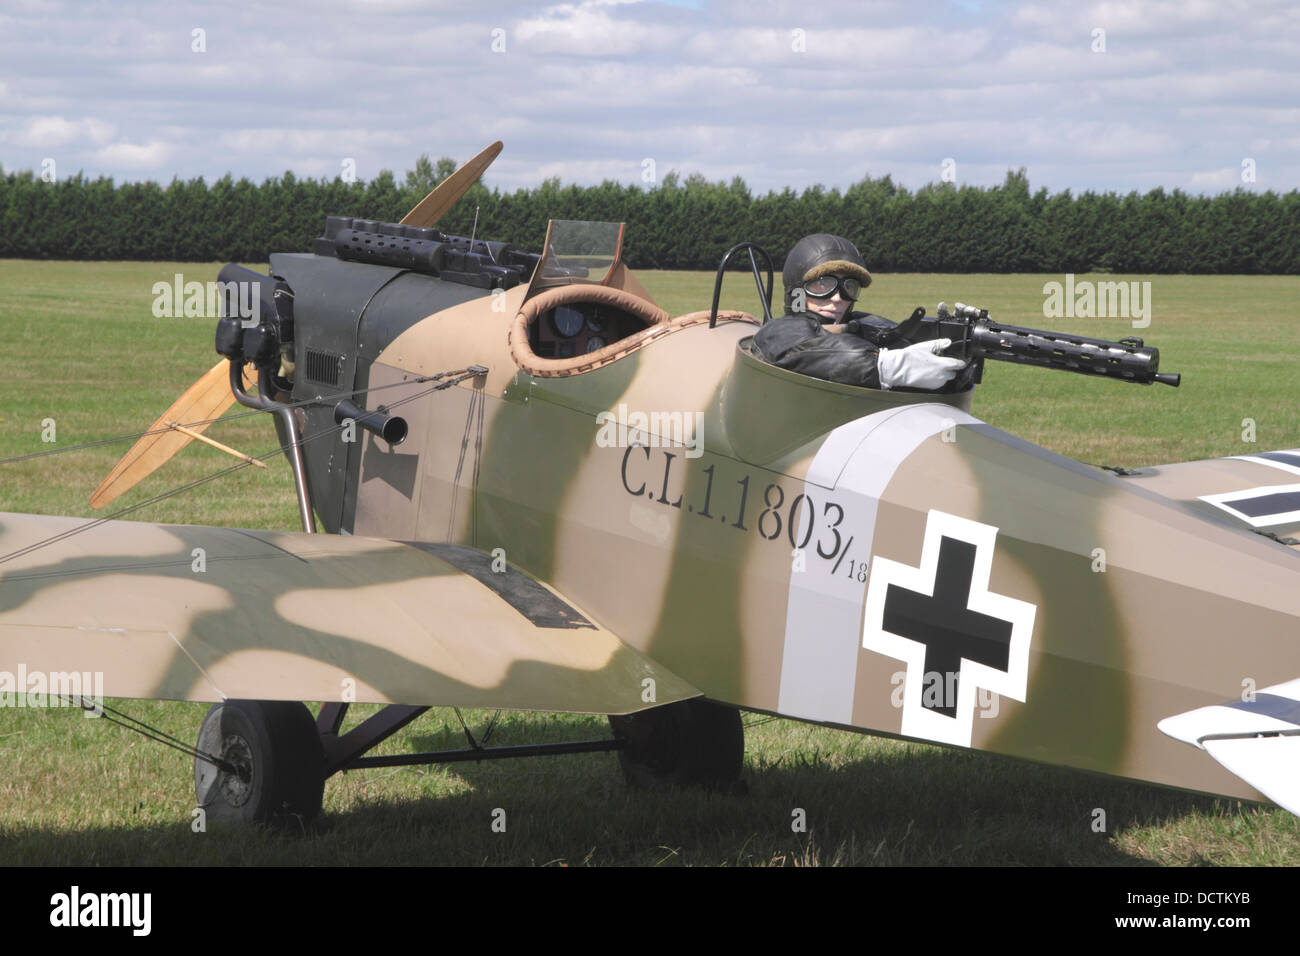 Junkers CL1 monoplane at White Waltham Retro Festival 2013 - Stock Image